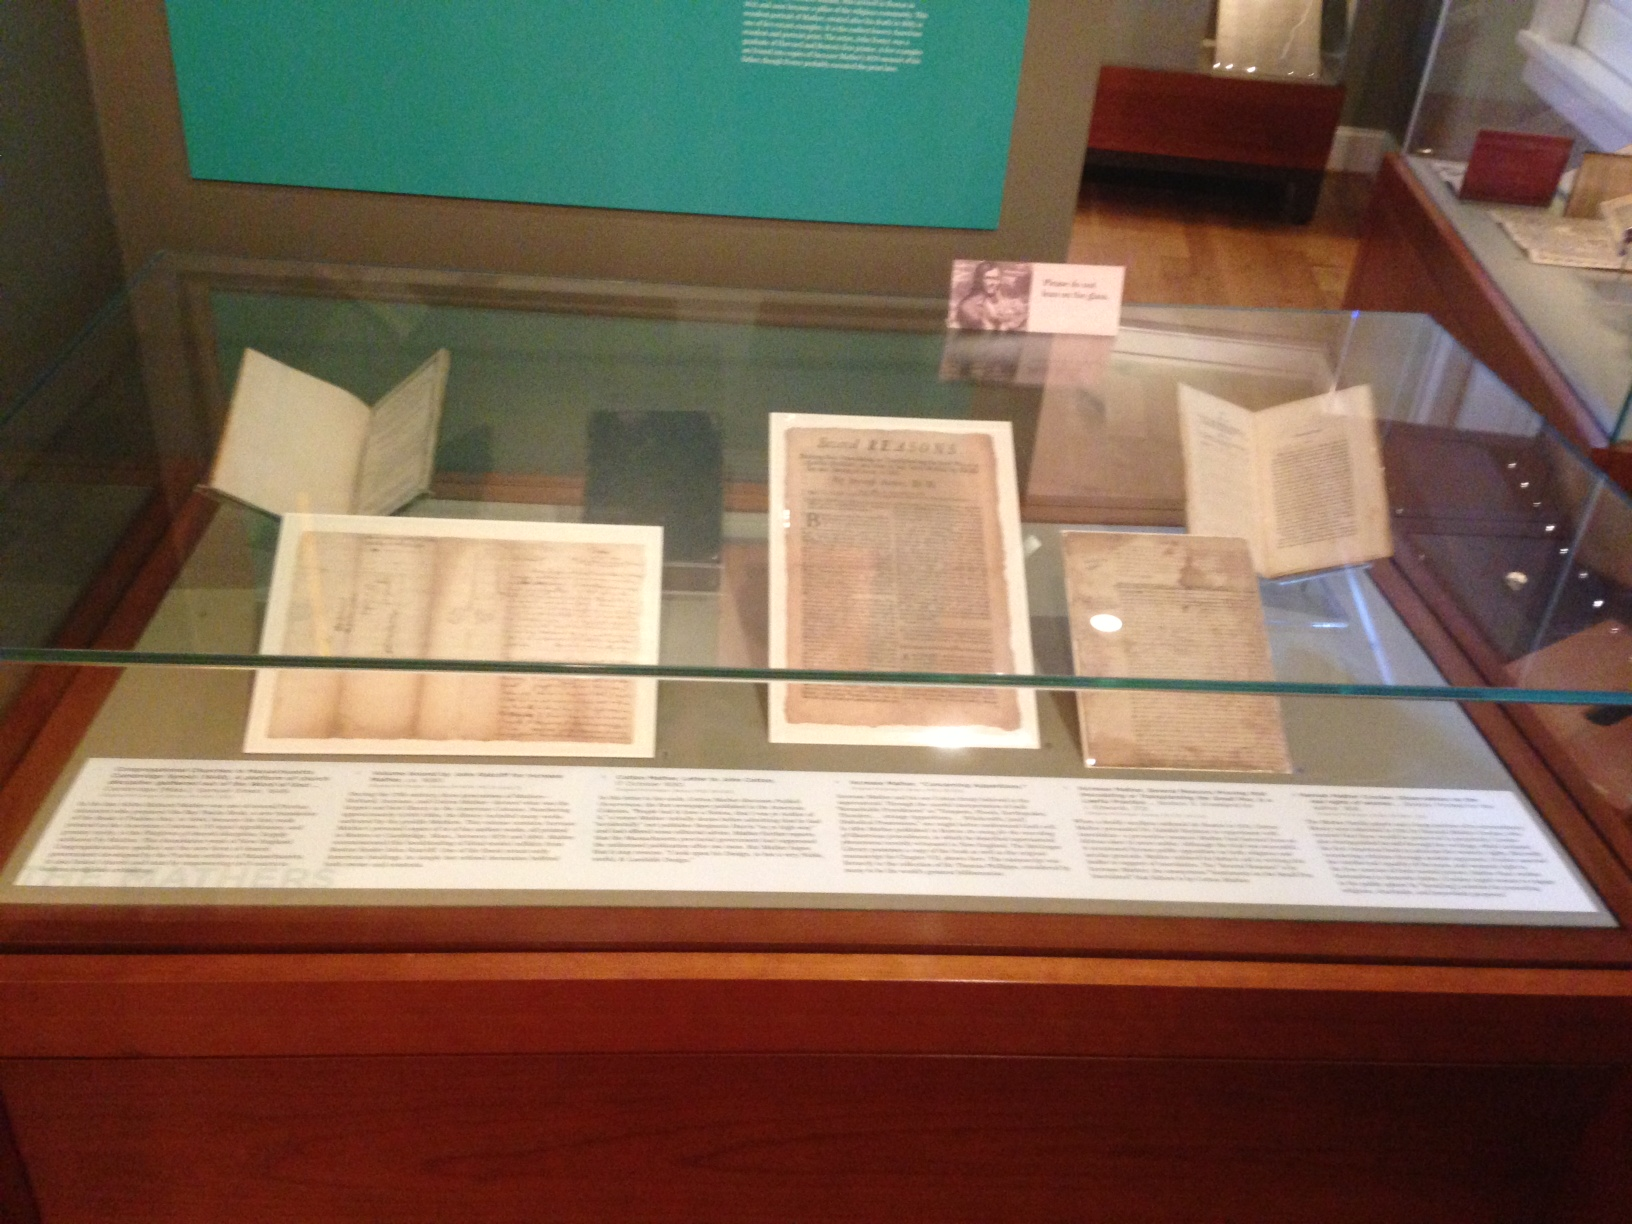 Puritan ministers Richard, Increase, and Cotton Mather profoundly influenced the history of colonial New England. Their stories are told here through books, broadsides, manuscripts--even a bookbinding from the family library--from the McGregor Library's superlative holdings.